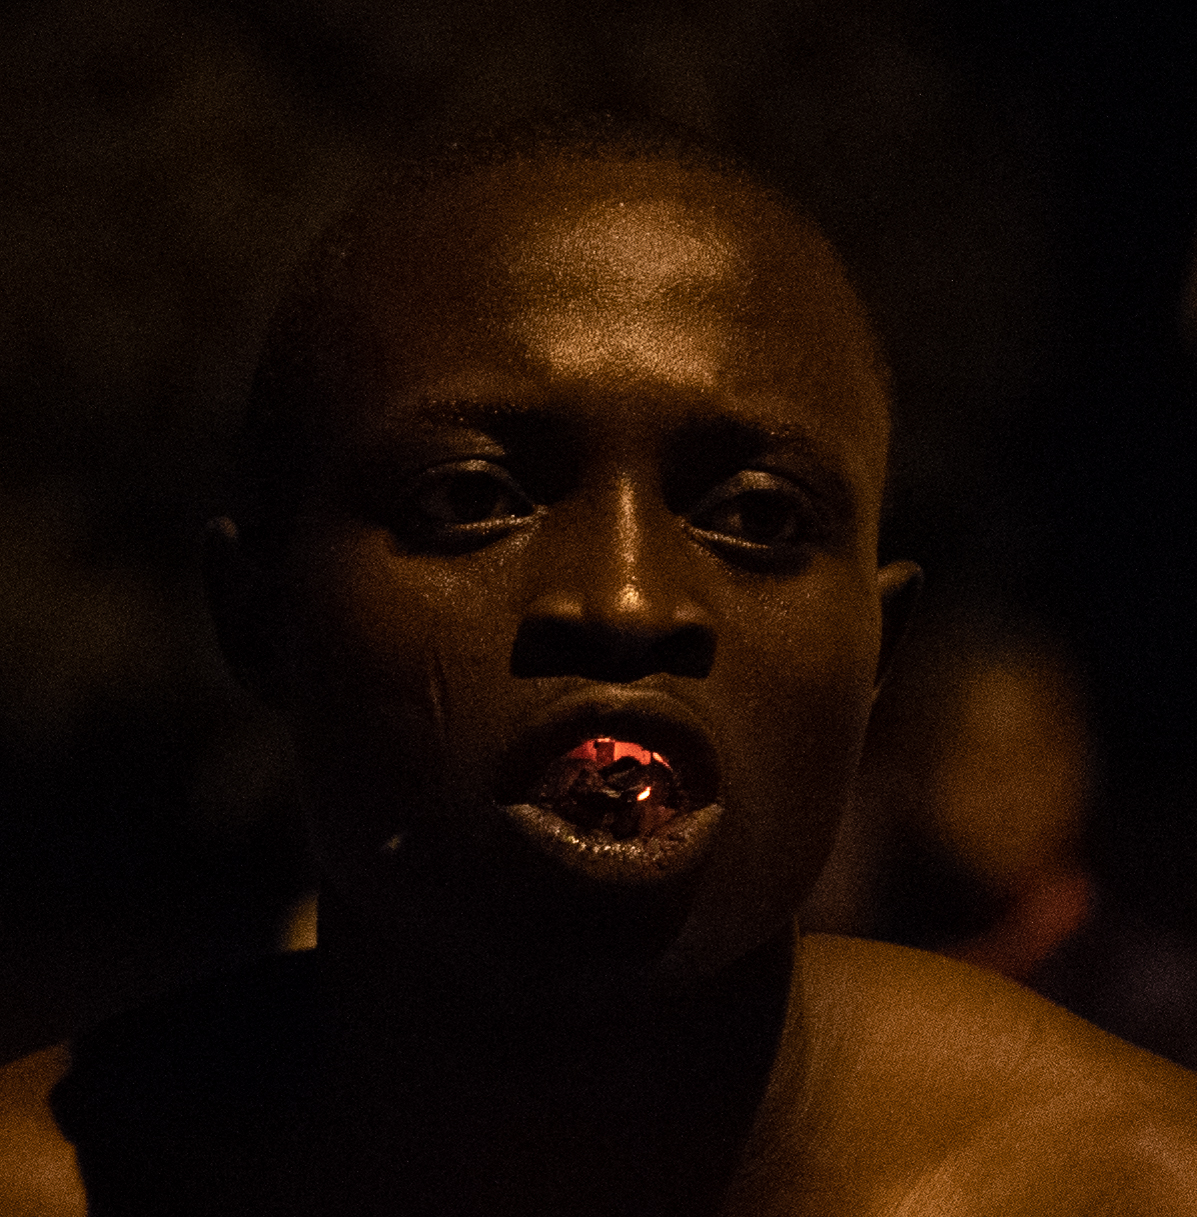 Fire Eater. Village of Kparatao, Togo